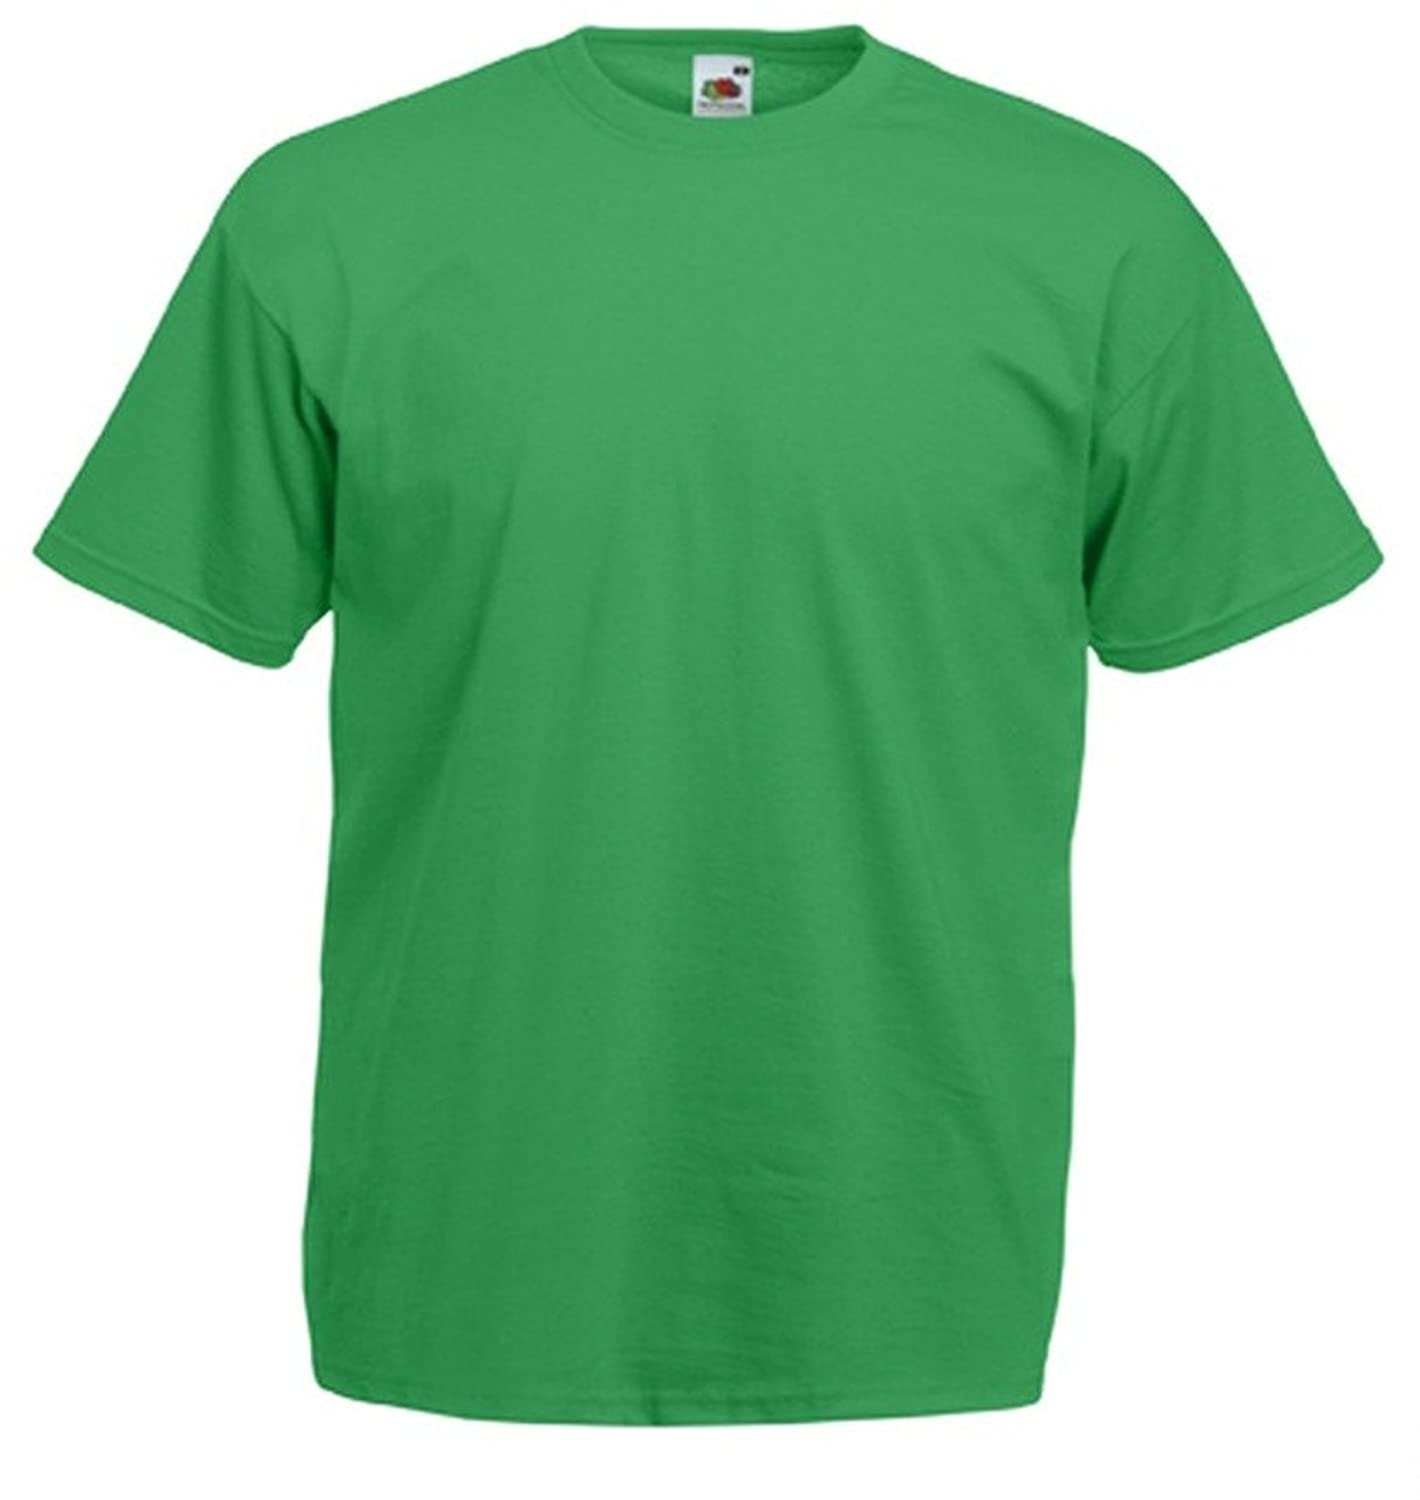 Kelly Green T-Shirt Plain Tee apparel clothing top gift for him or ...